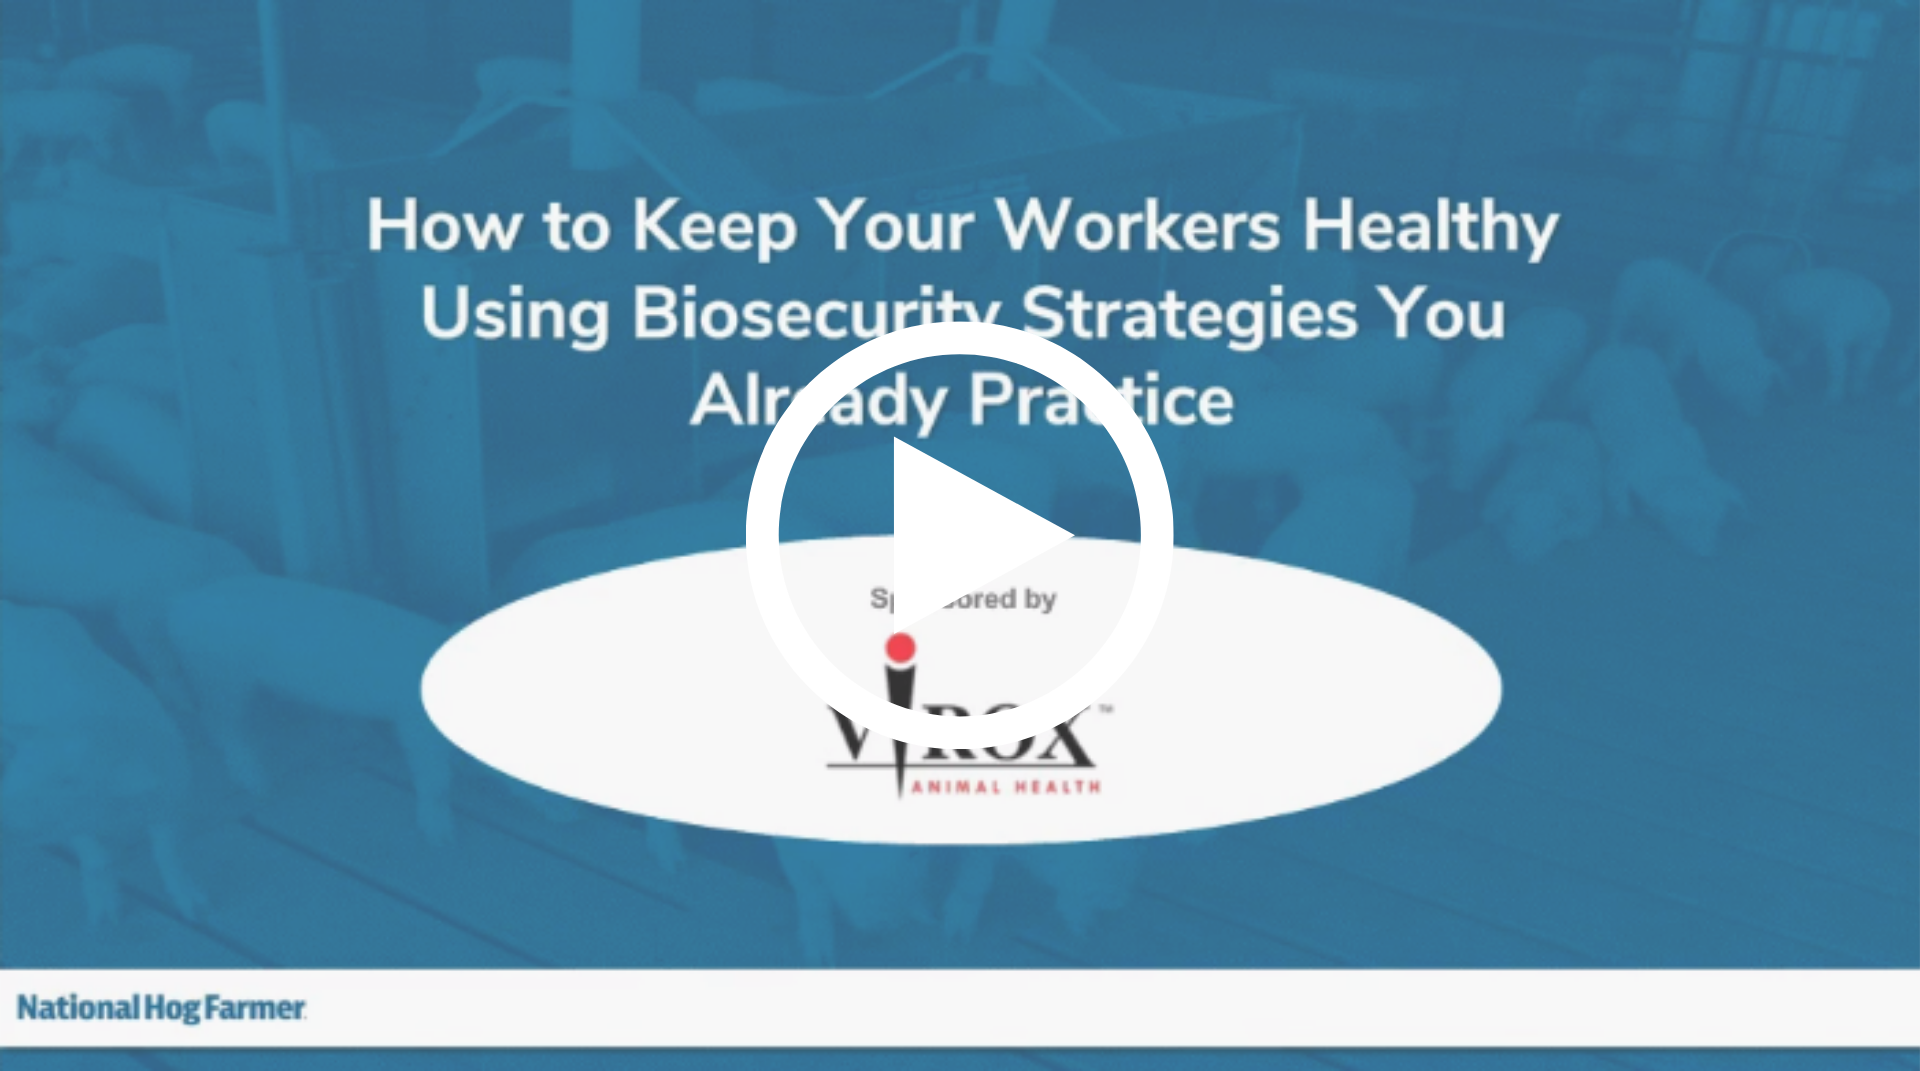 How to Keep Your Workers Healthy Using Biosecurity Strategies You Already Practice